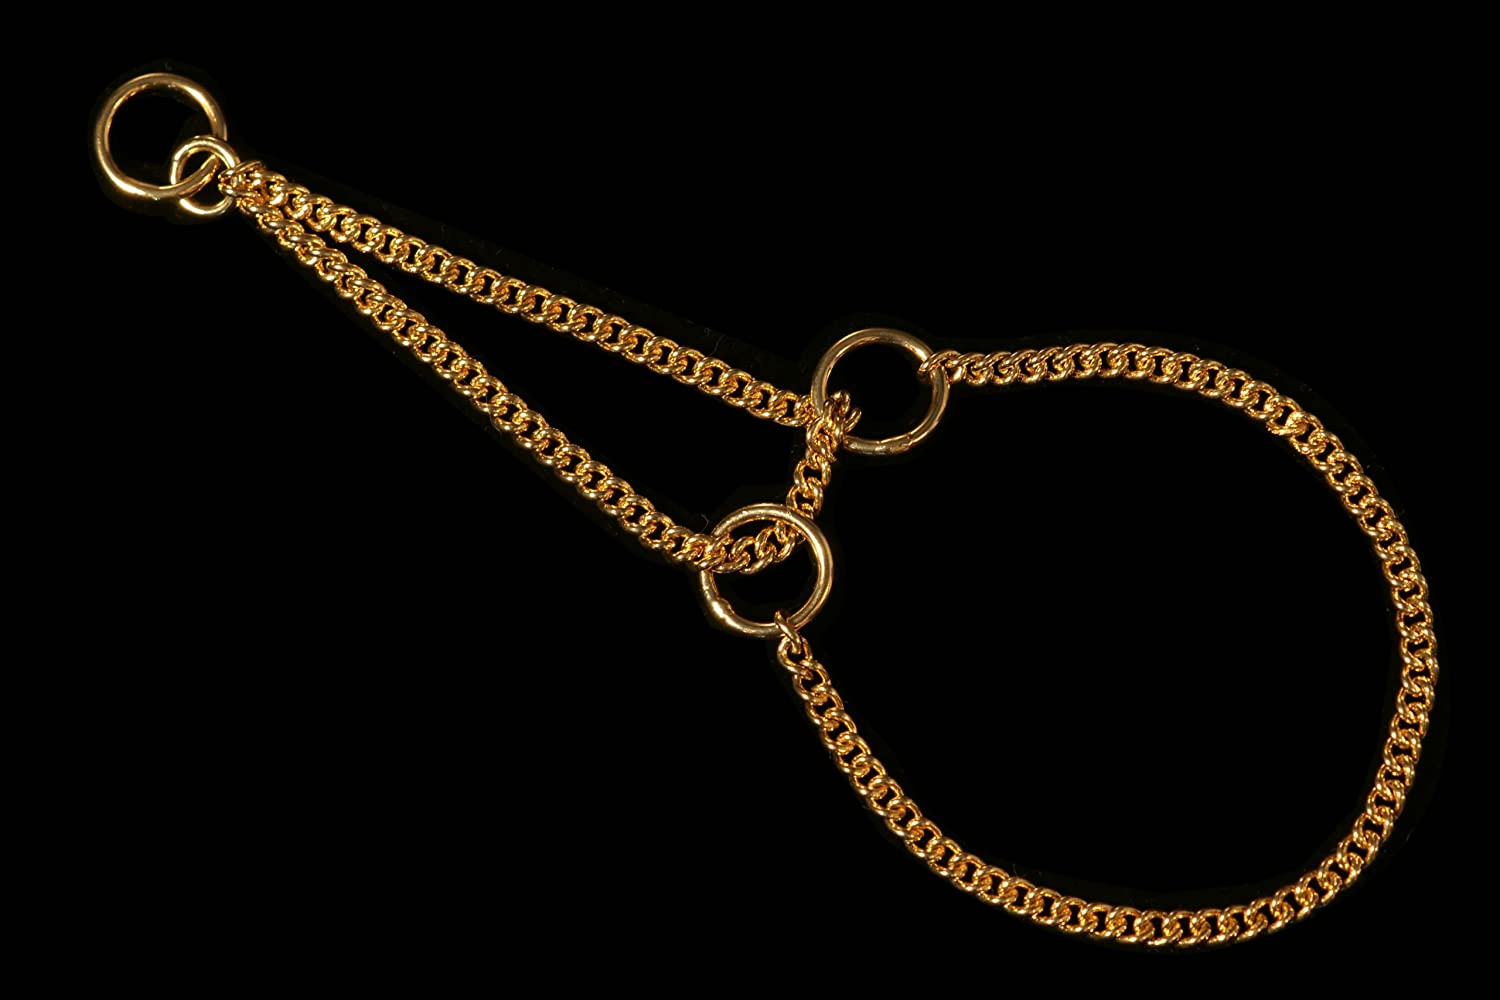 gold Plate Alvalley Martingale Chain Show Collar for Dogs Thickness 1.2 mm x 14 in